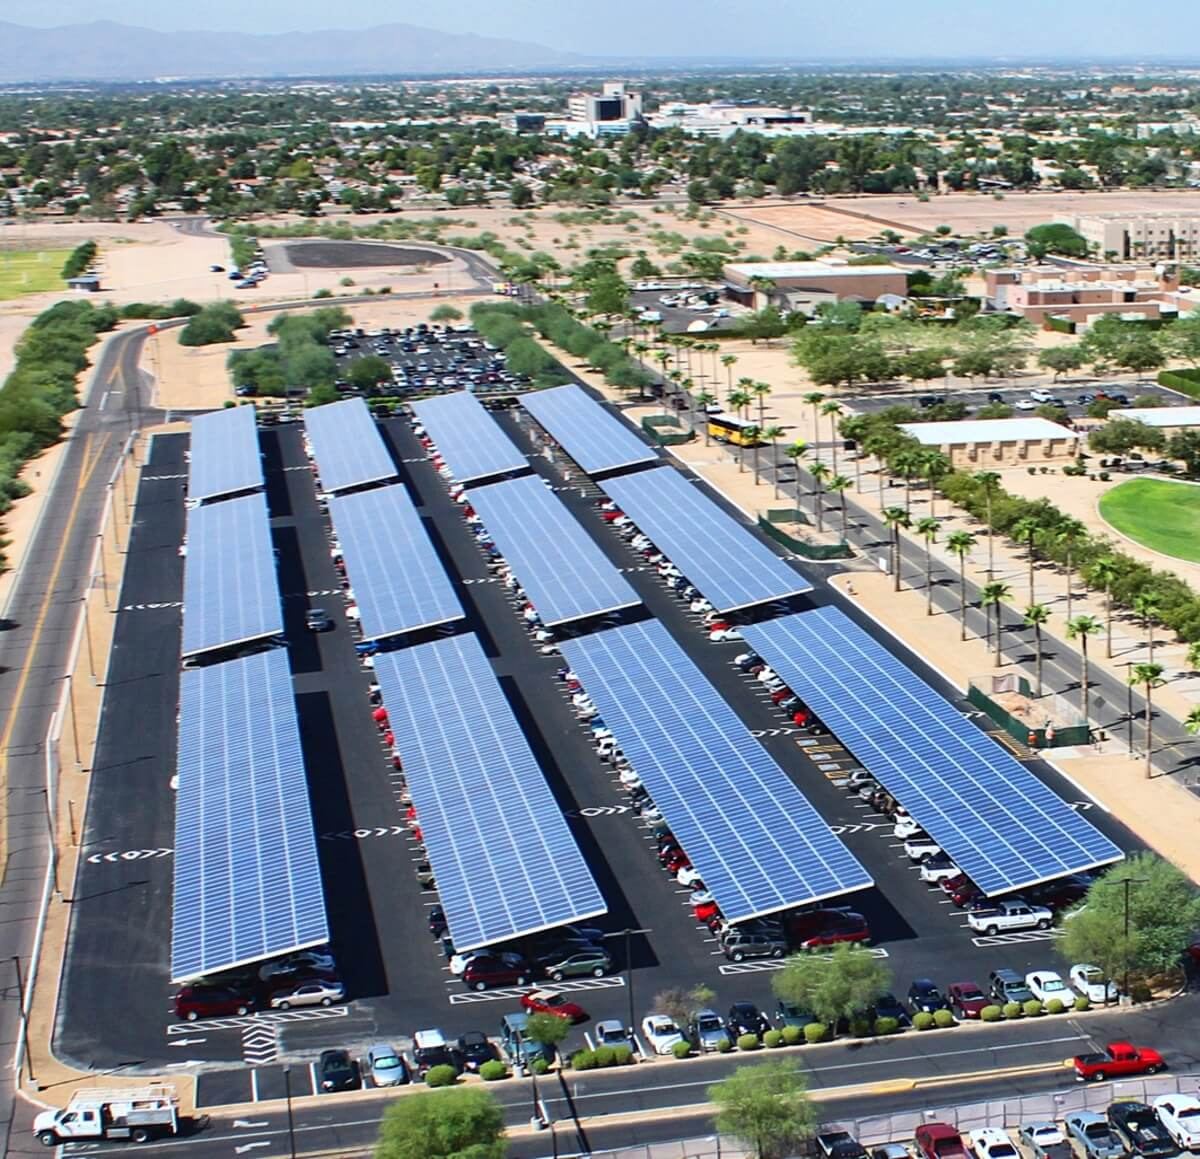 Solar Panels in a Parking Lot